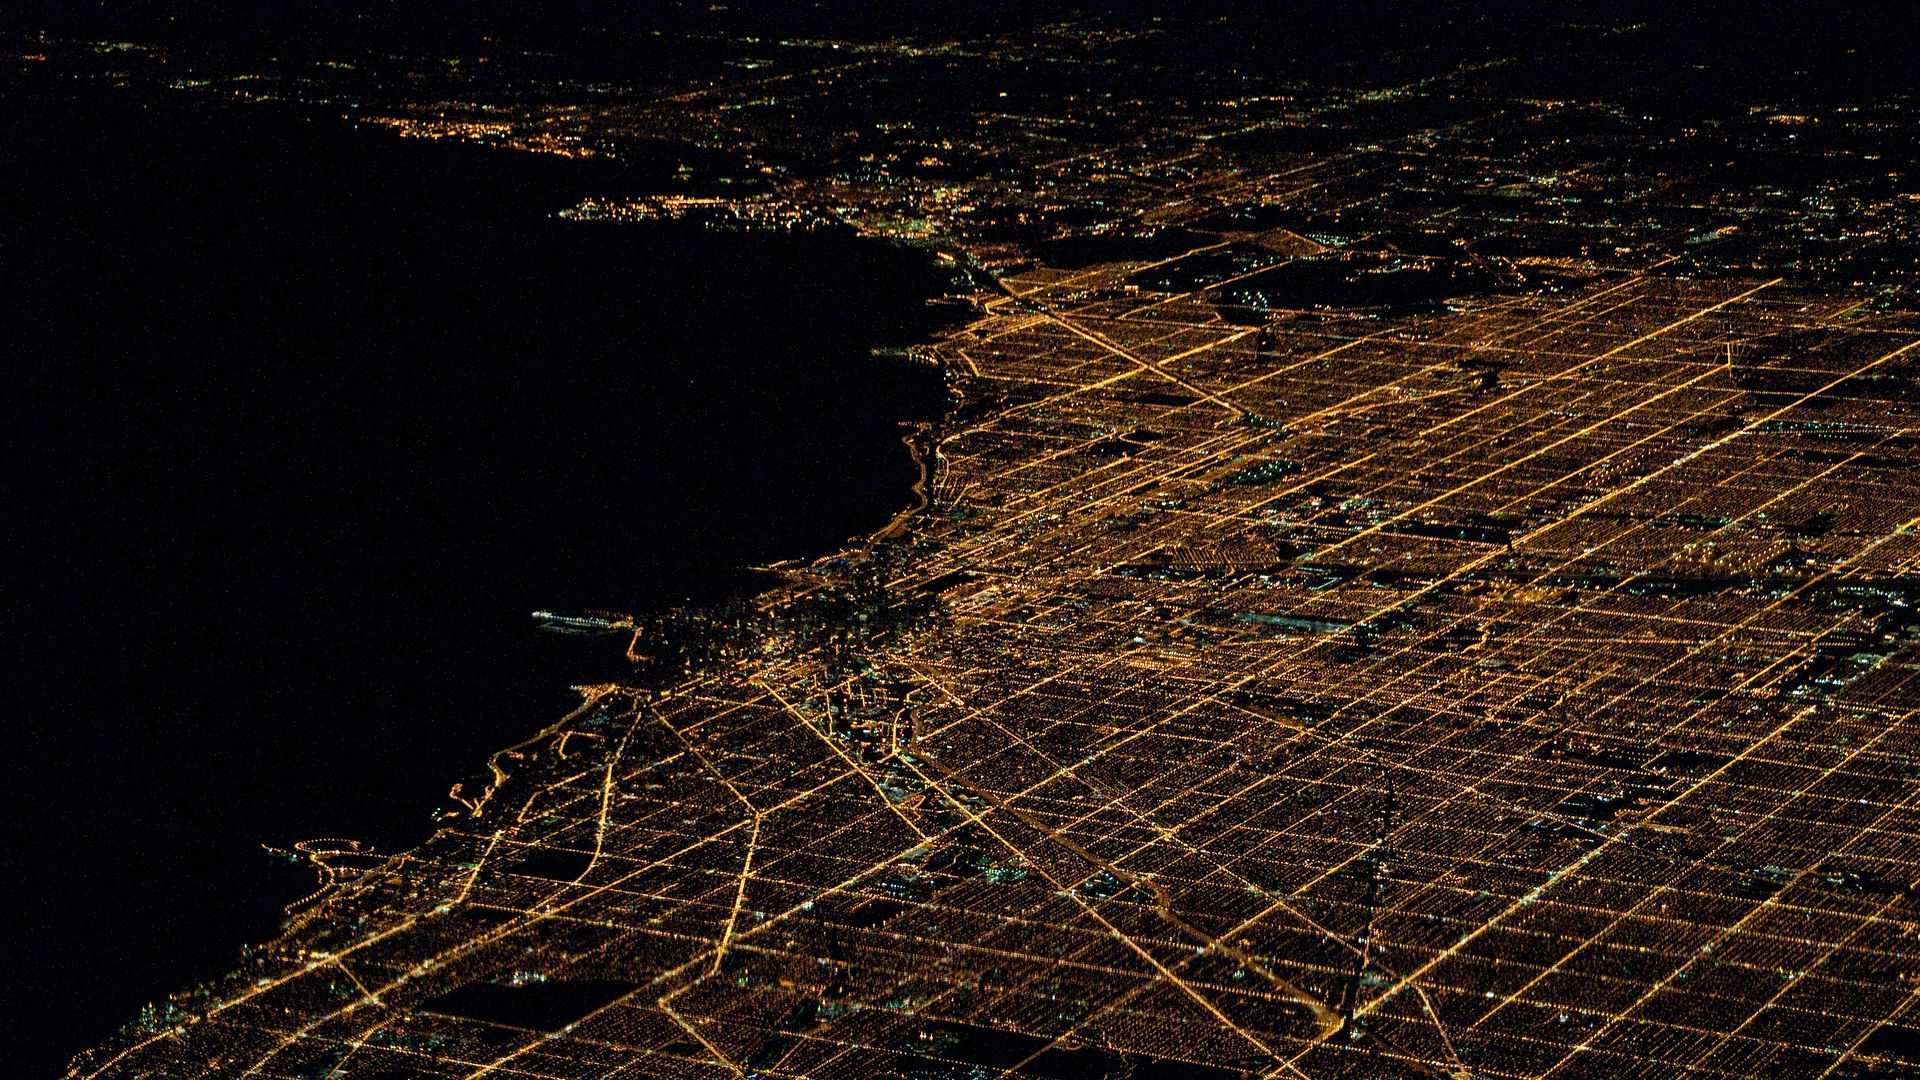 Electricity grids